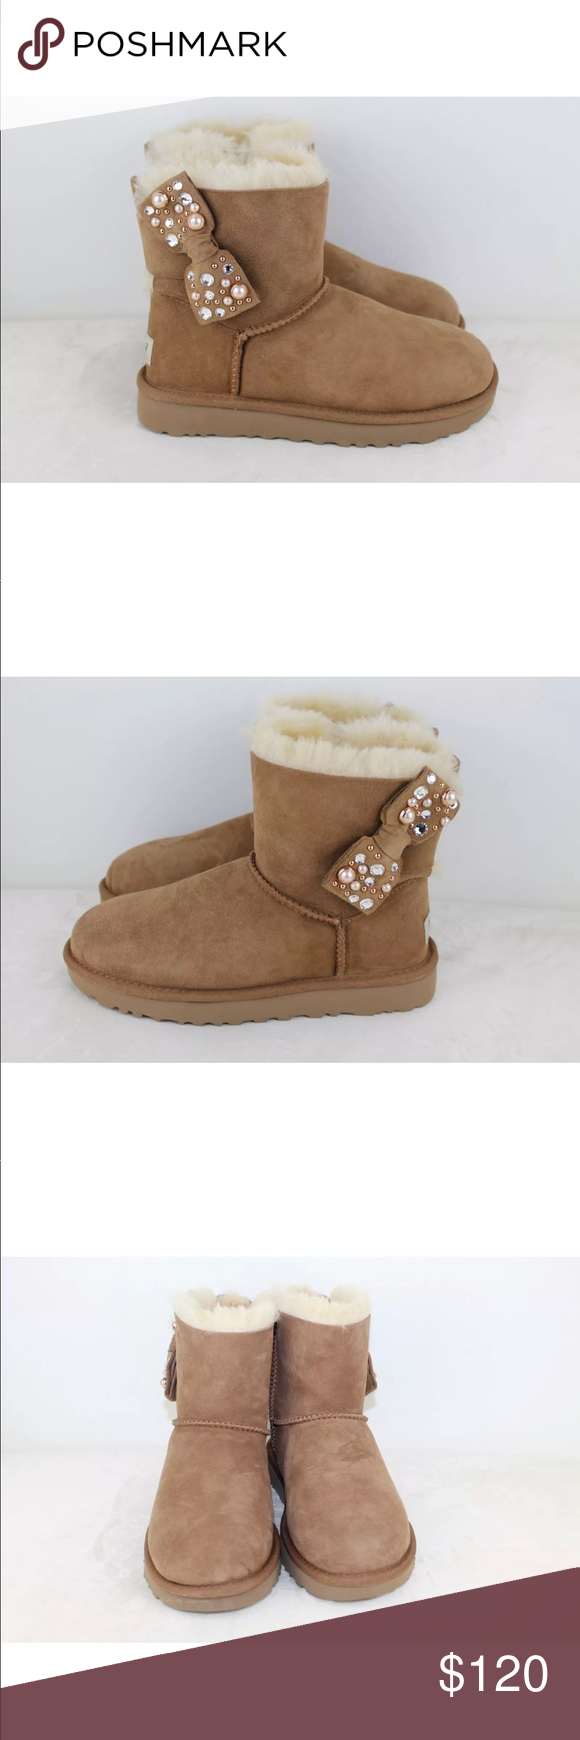 3a4710bb6df UGG MINI BAILEY BOW BRILLIANT CHESTNUT BLING BOOTS Our iconic Bailey ...